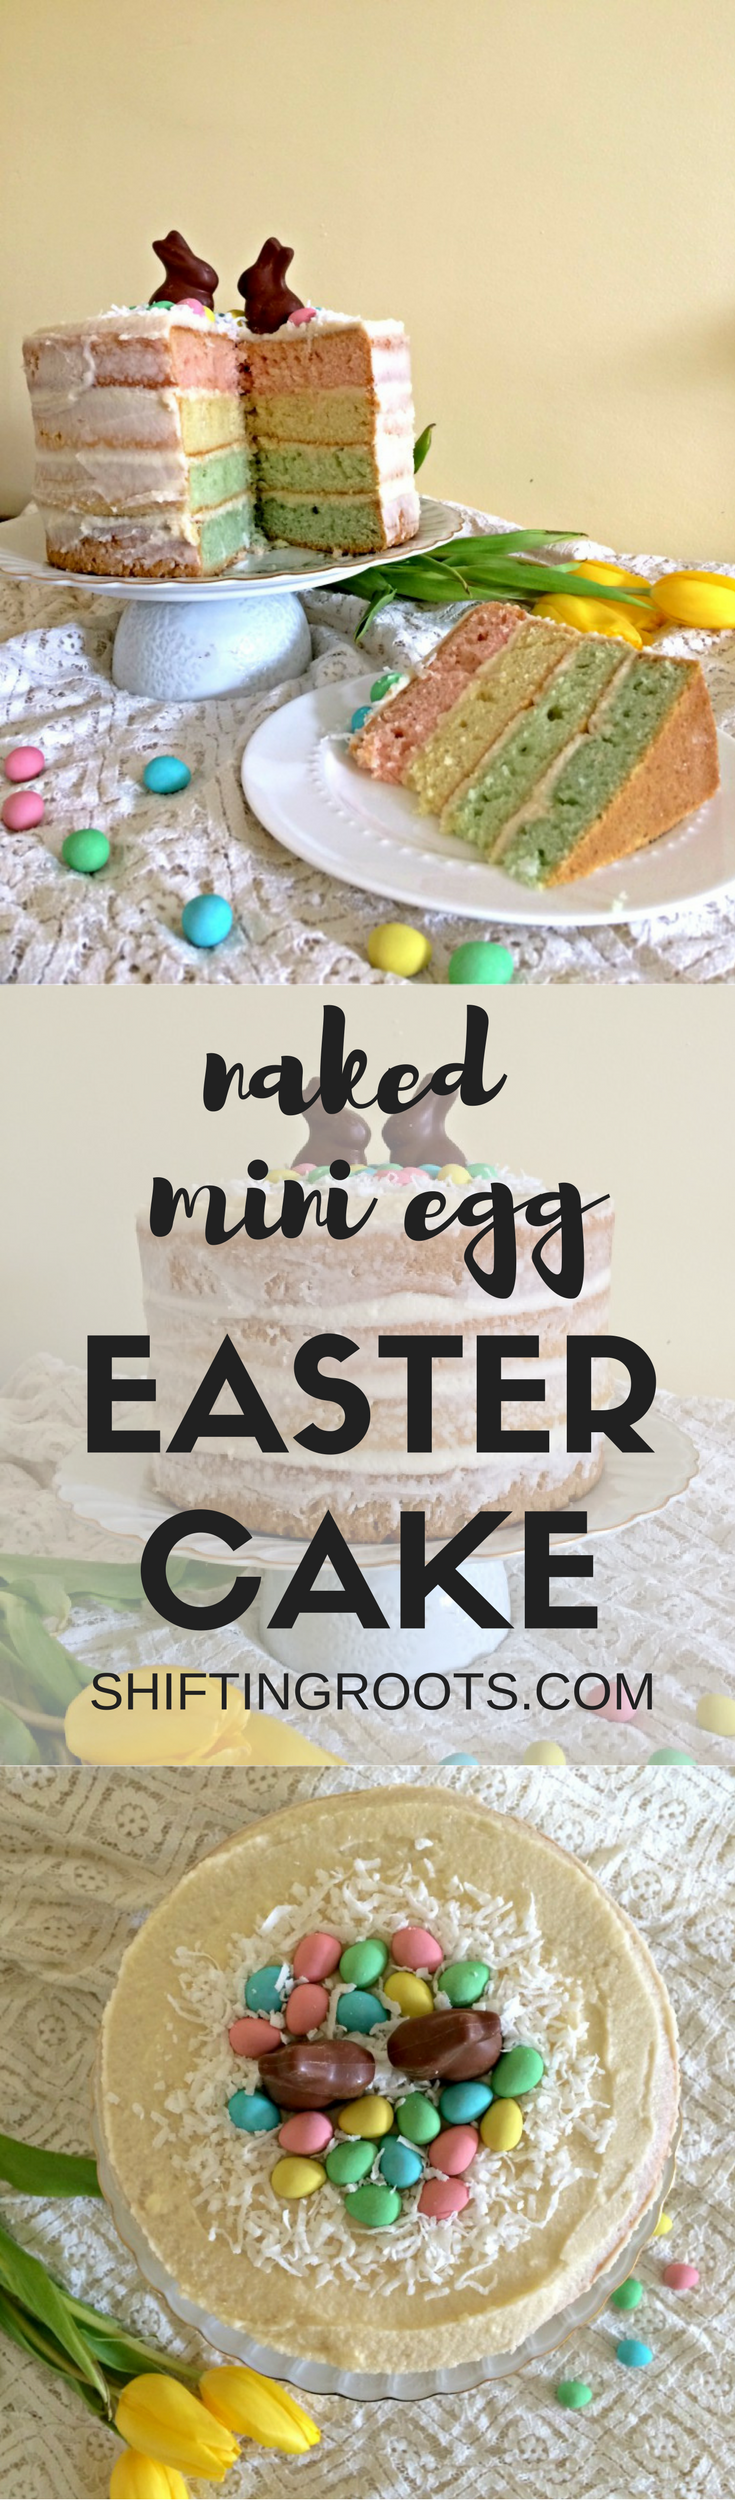 naked mini egg easter cake